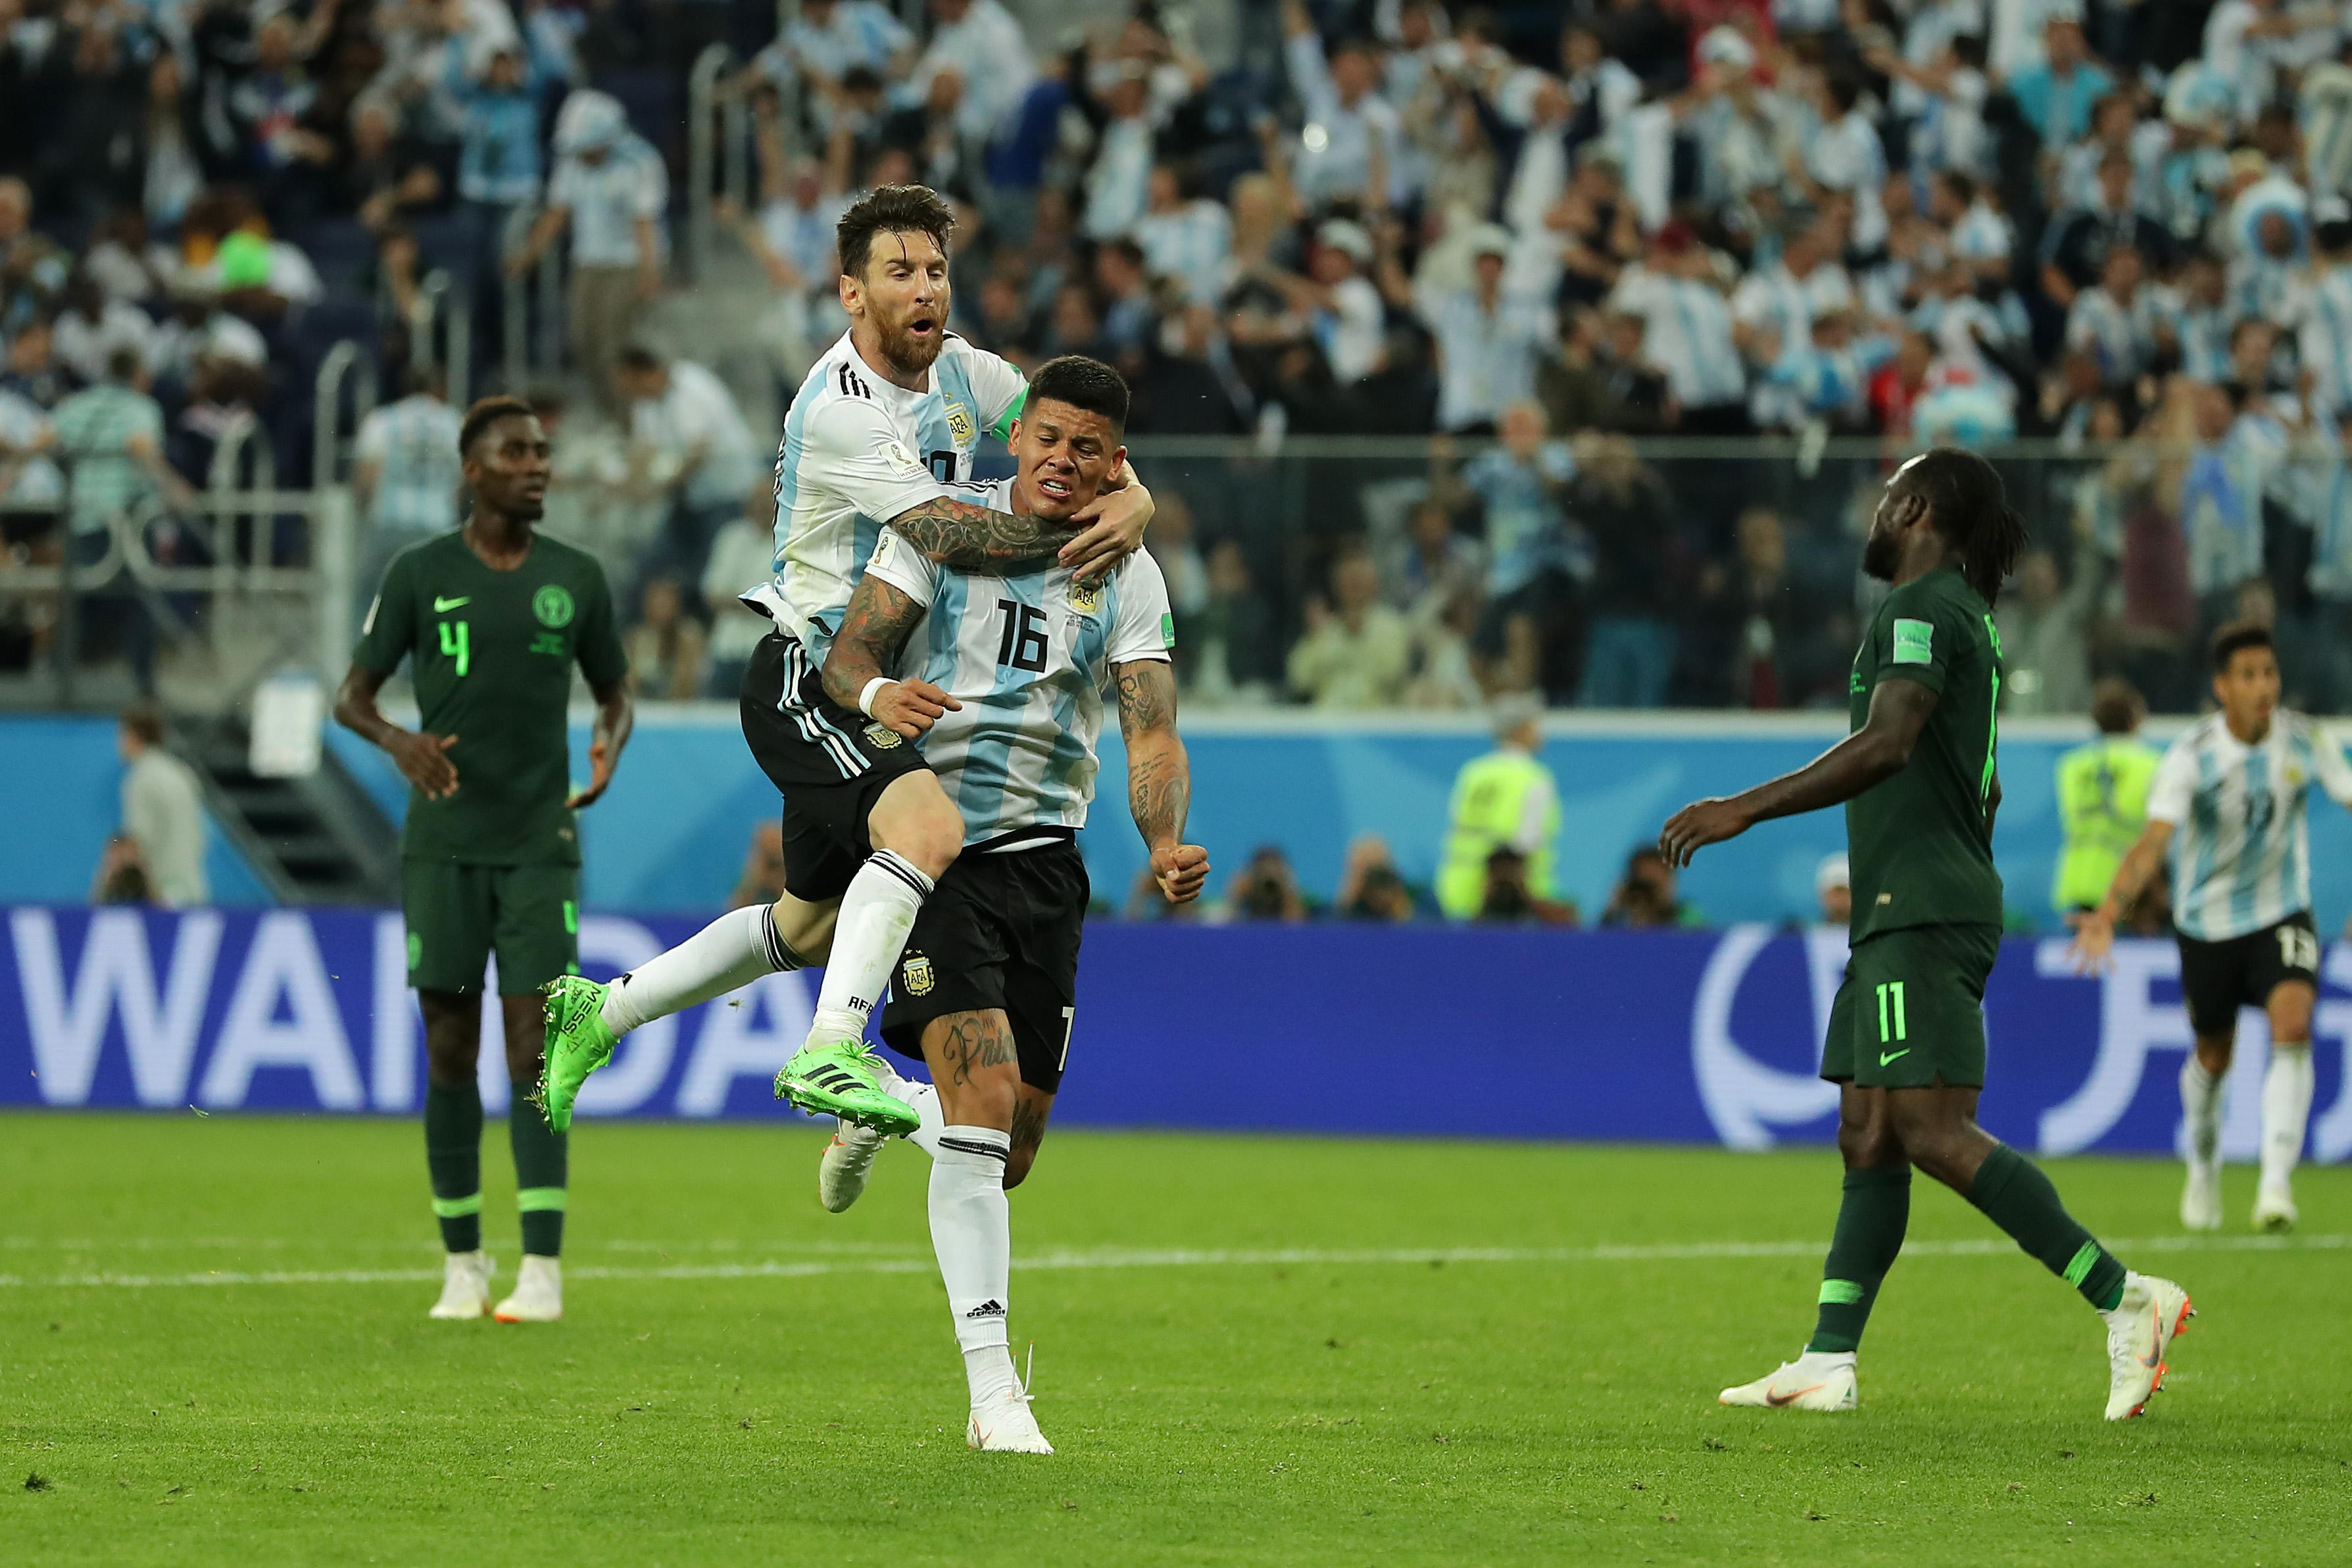 Pictures of the world cup final 2020 higuain